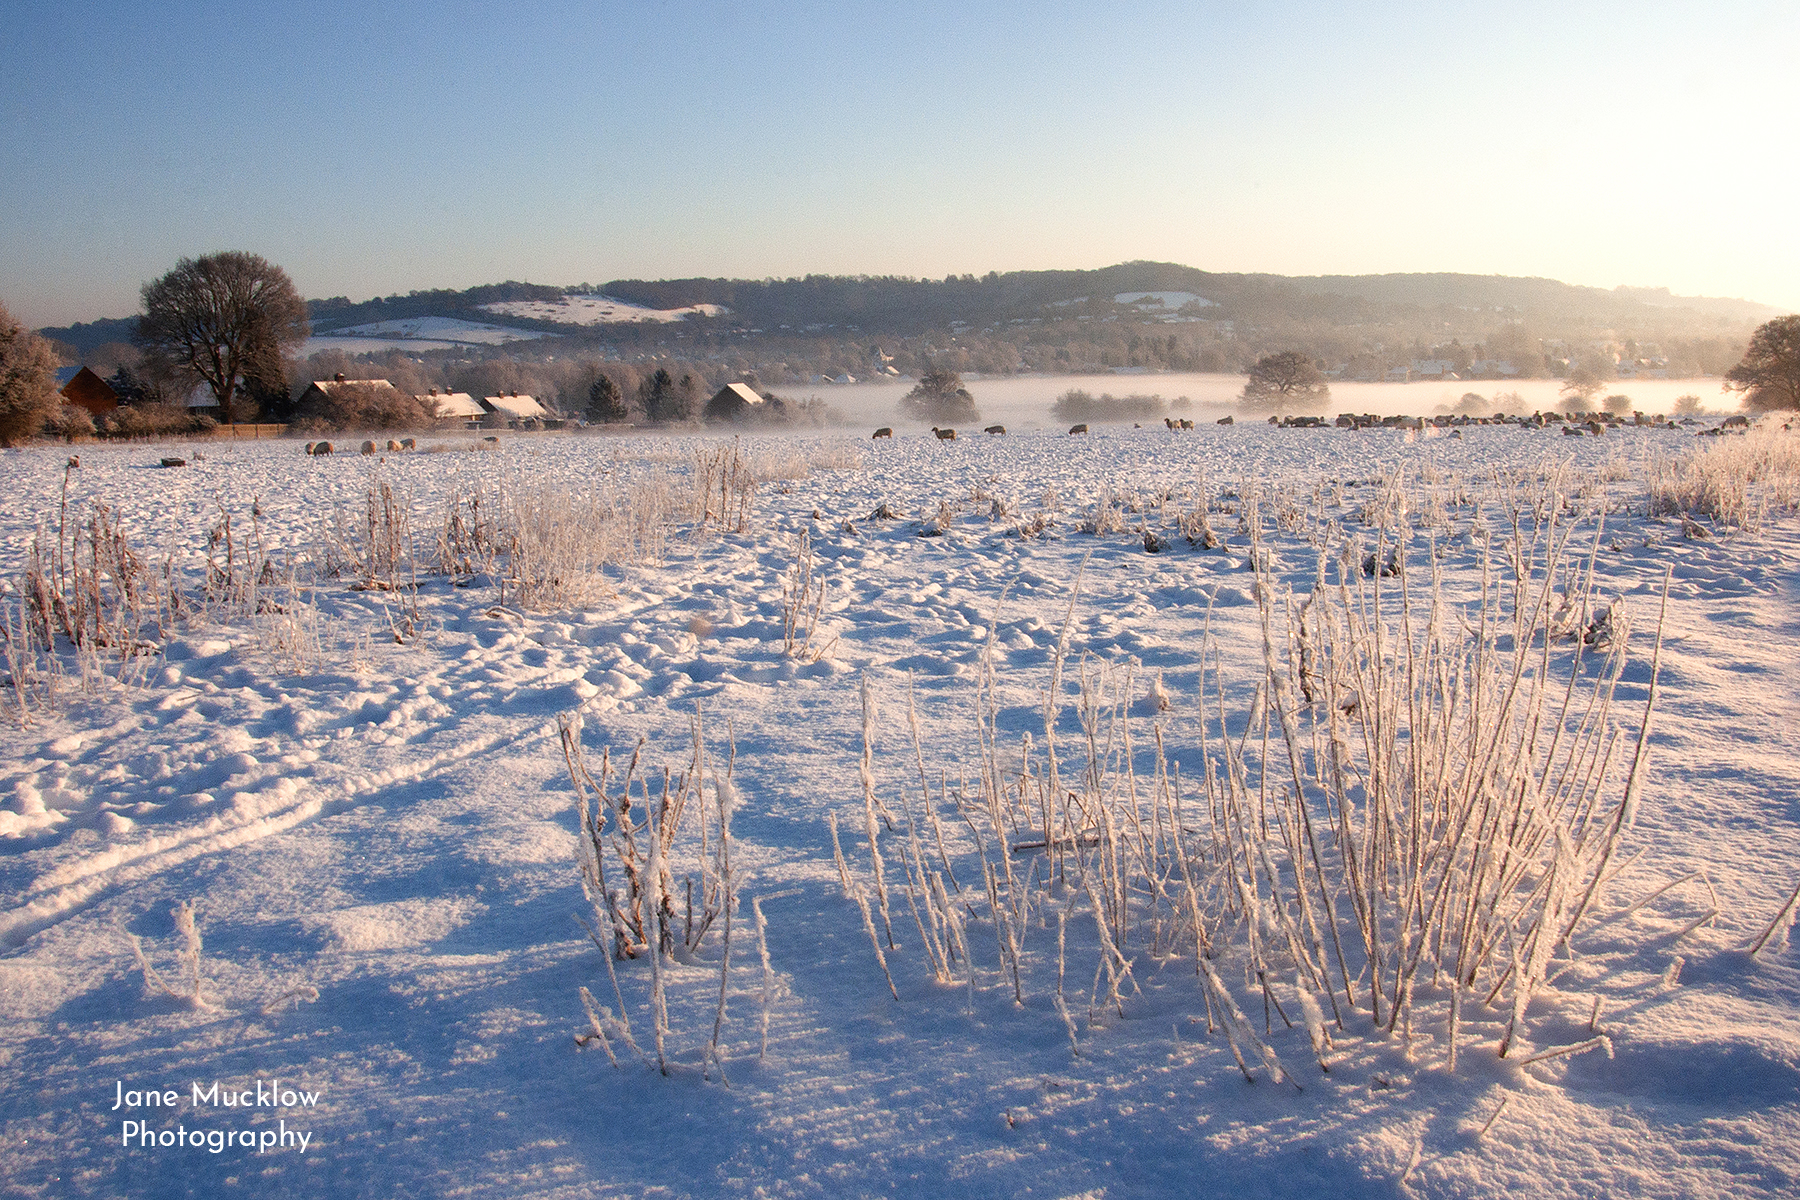 Photograph by Jane Mucklow of a snowy view across the sheep field to Otford, at sunrise